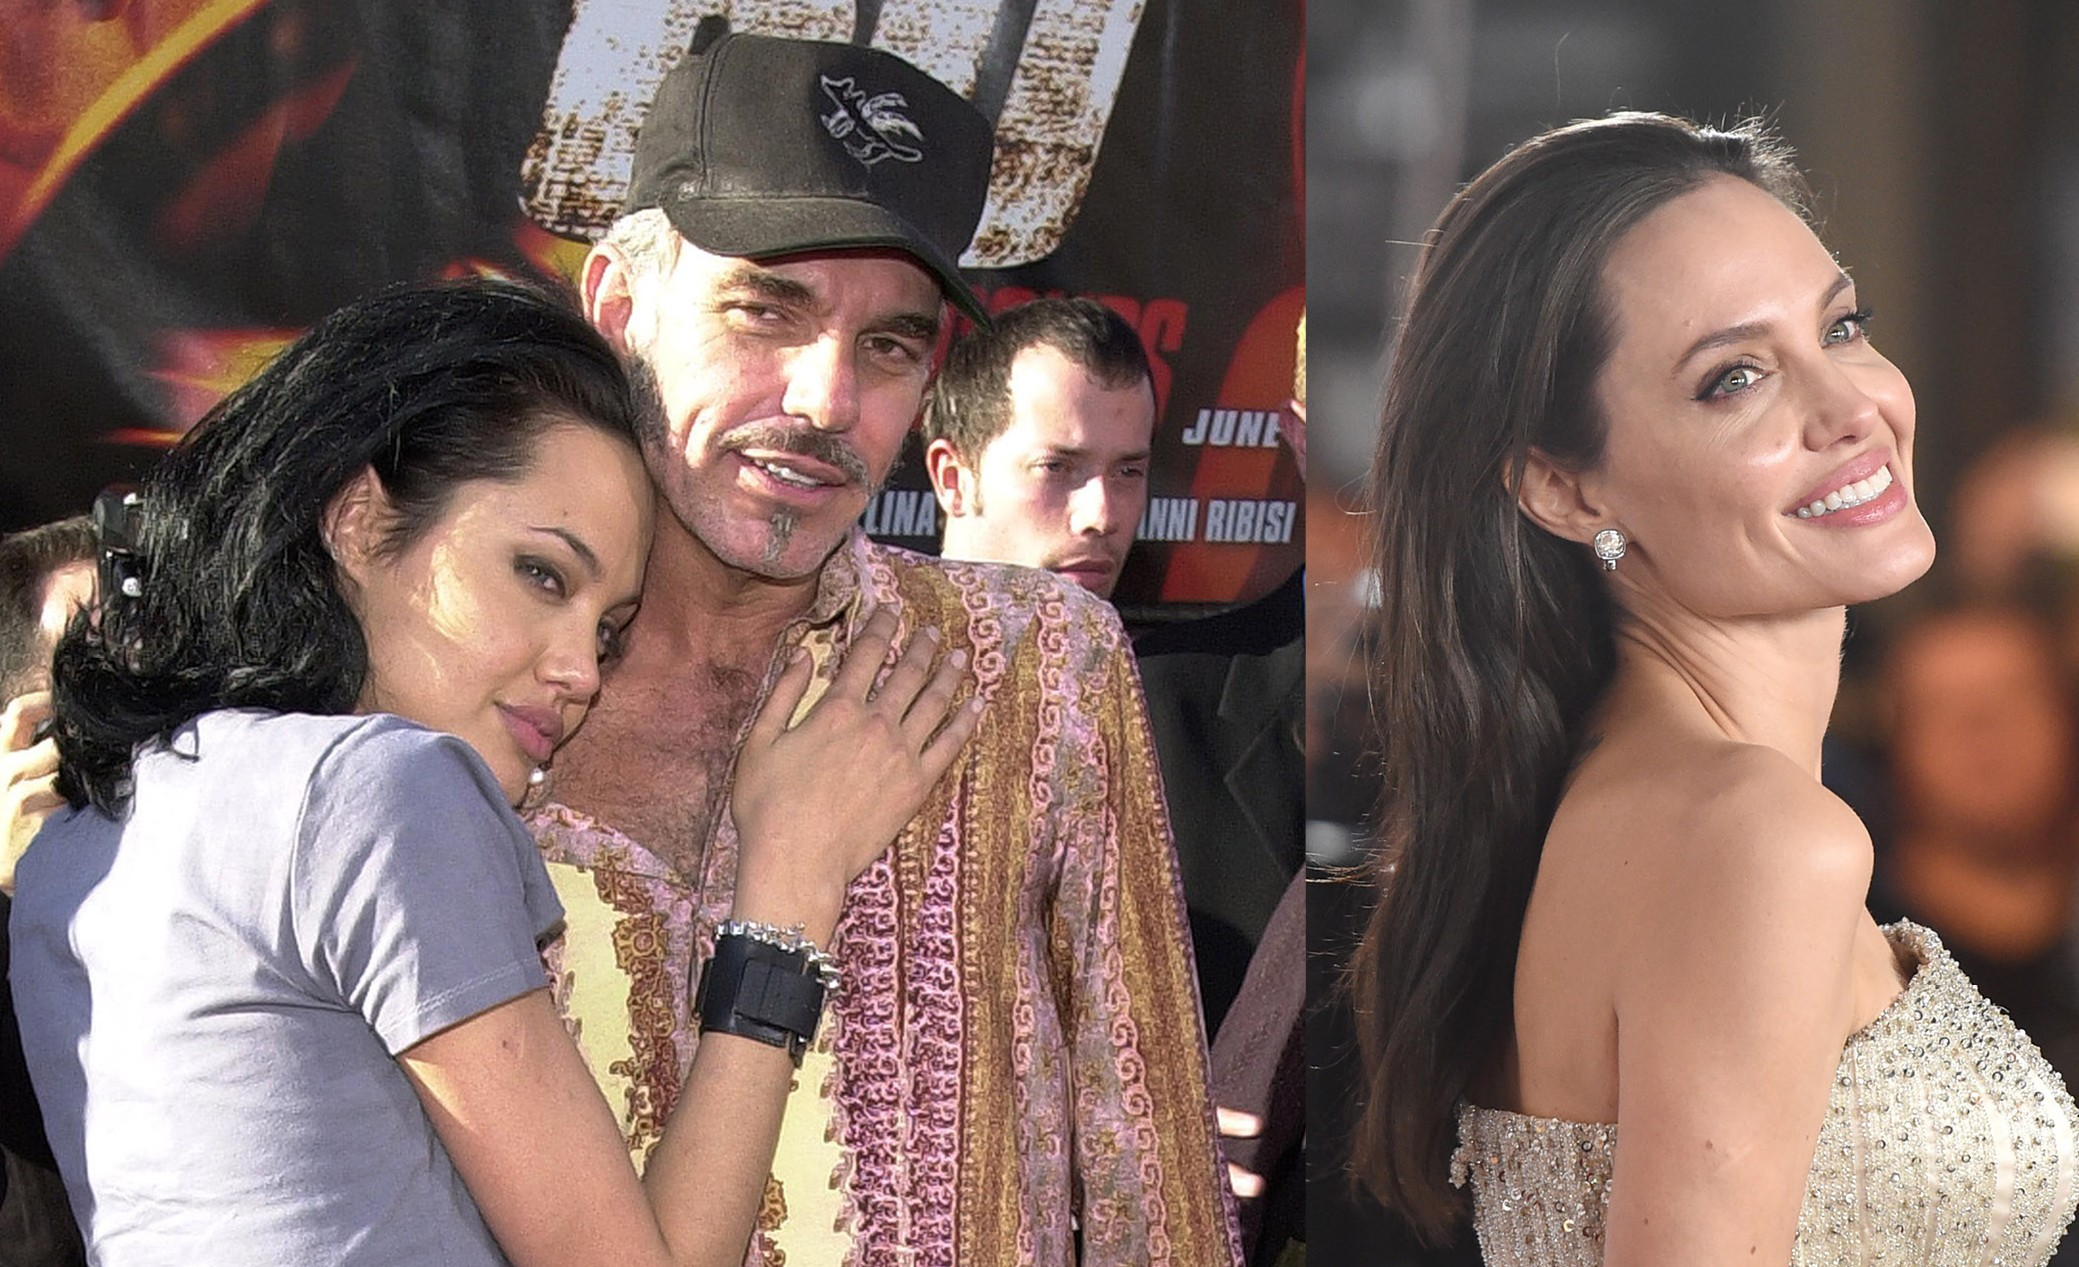 Angelina Jolie e Billy Bob Thornton em 2000. E Angelina Jolie em 2015 (Foto: Getty Images)